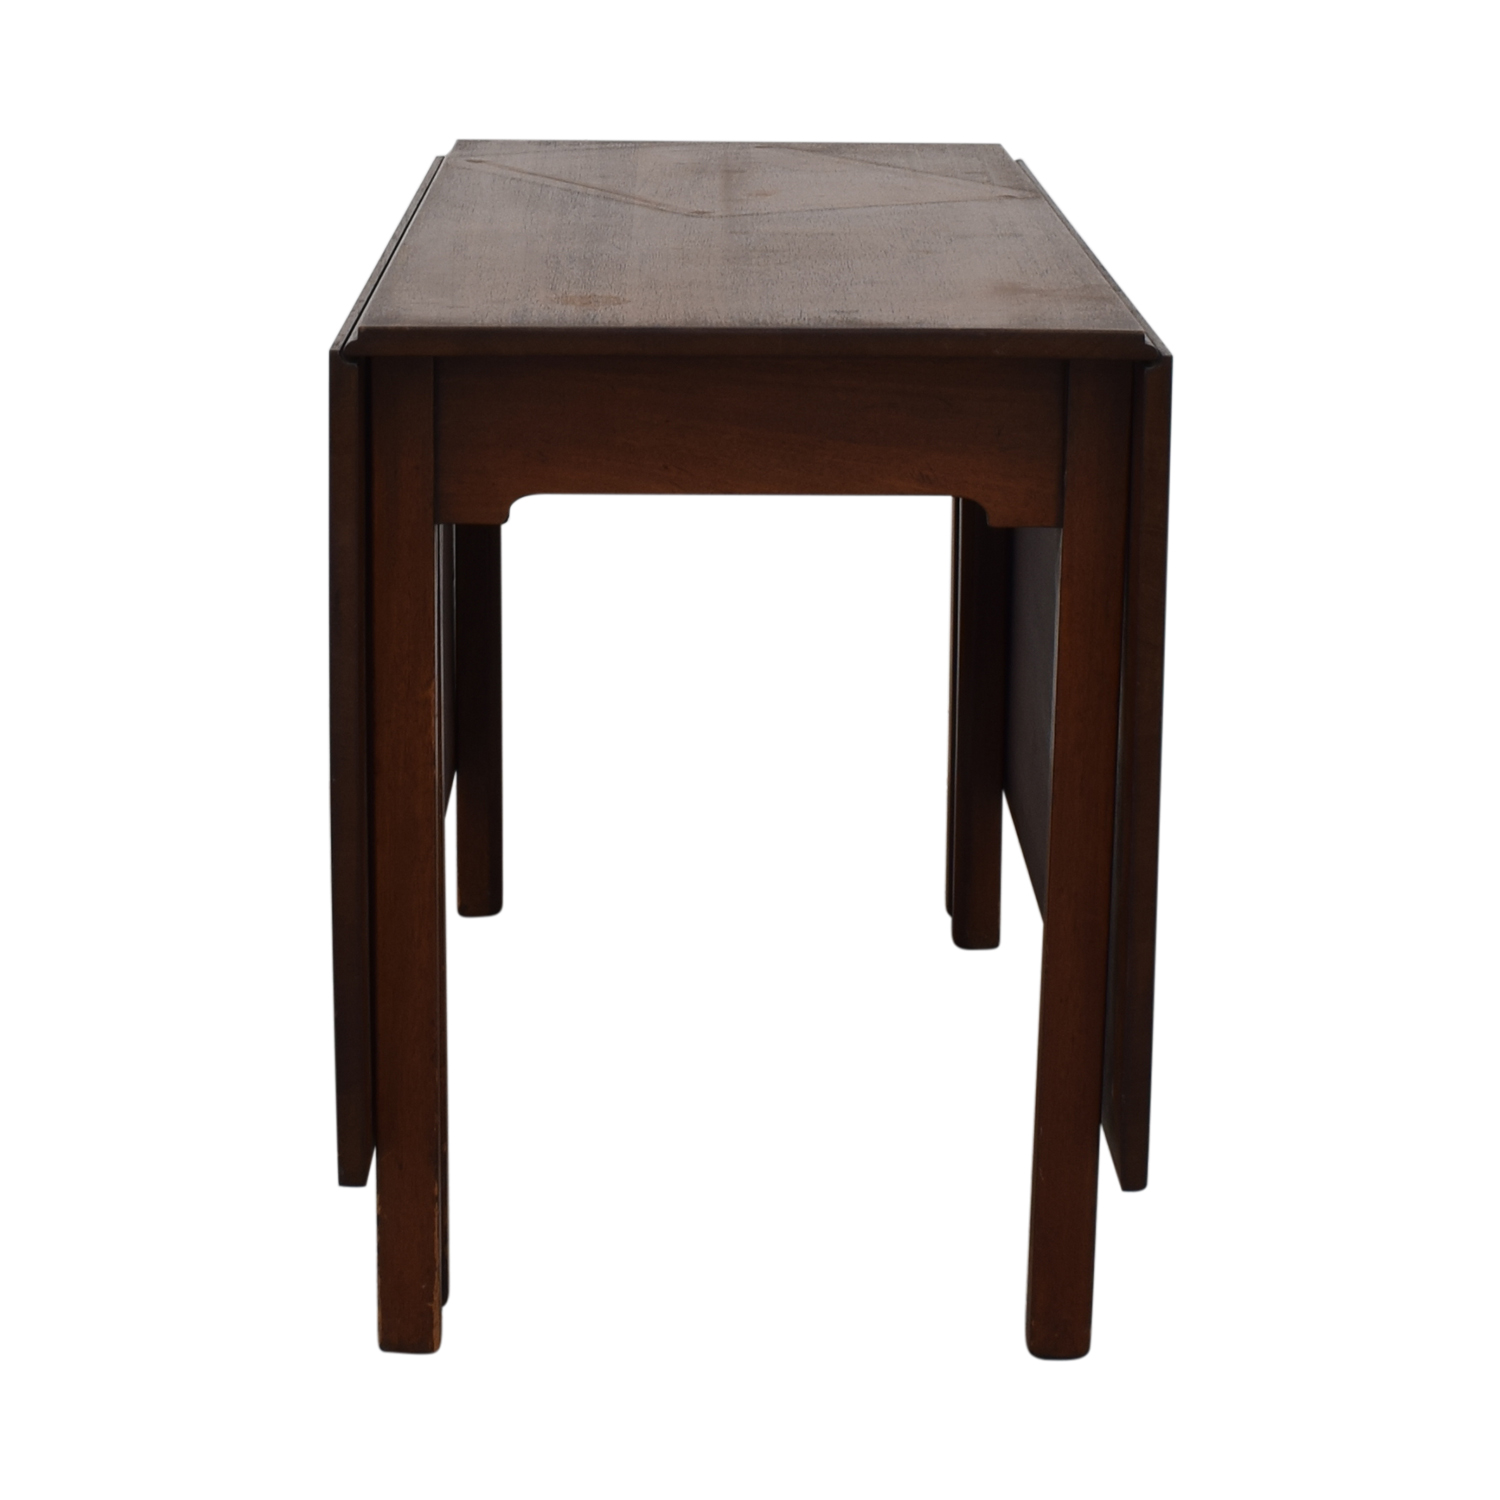 shop Kittinger Furniture Adjustable Dining Room Table Kittinger Furniture Dinner Tables